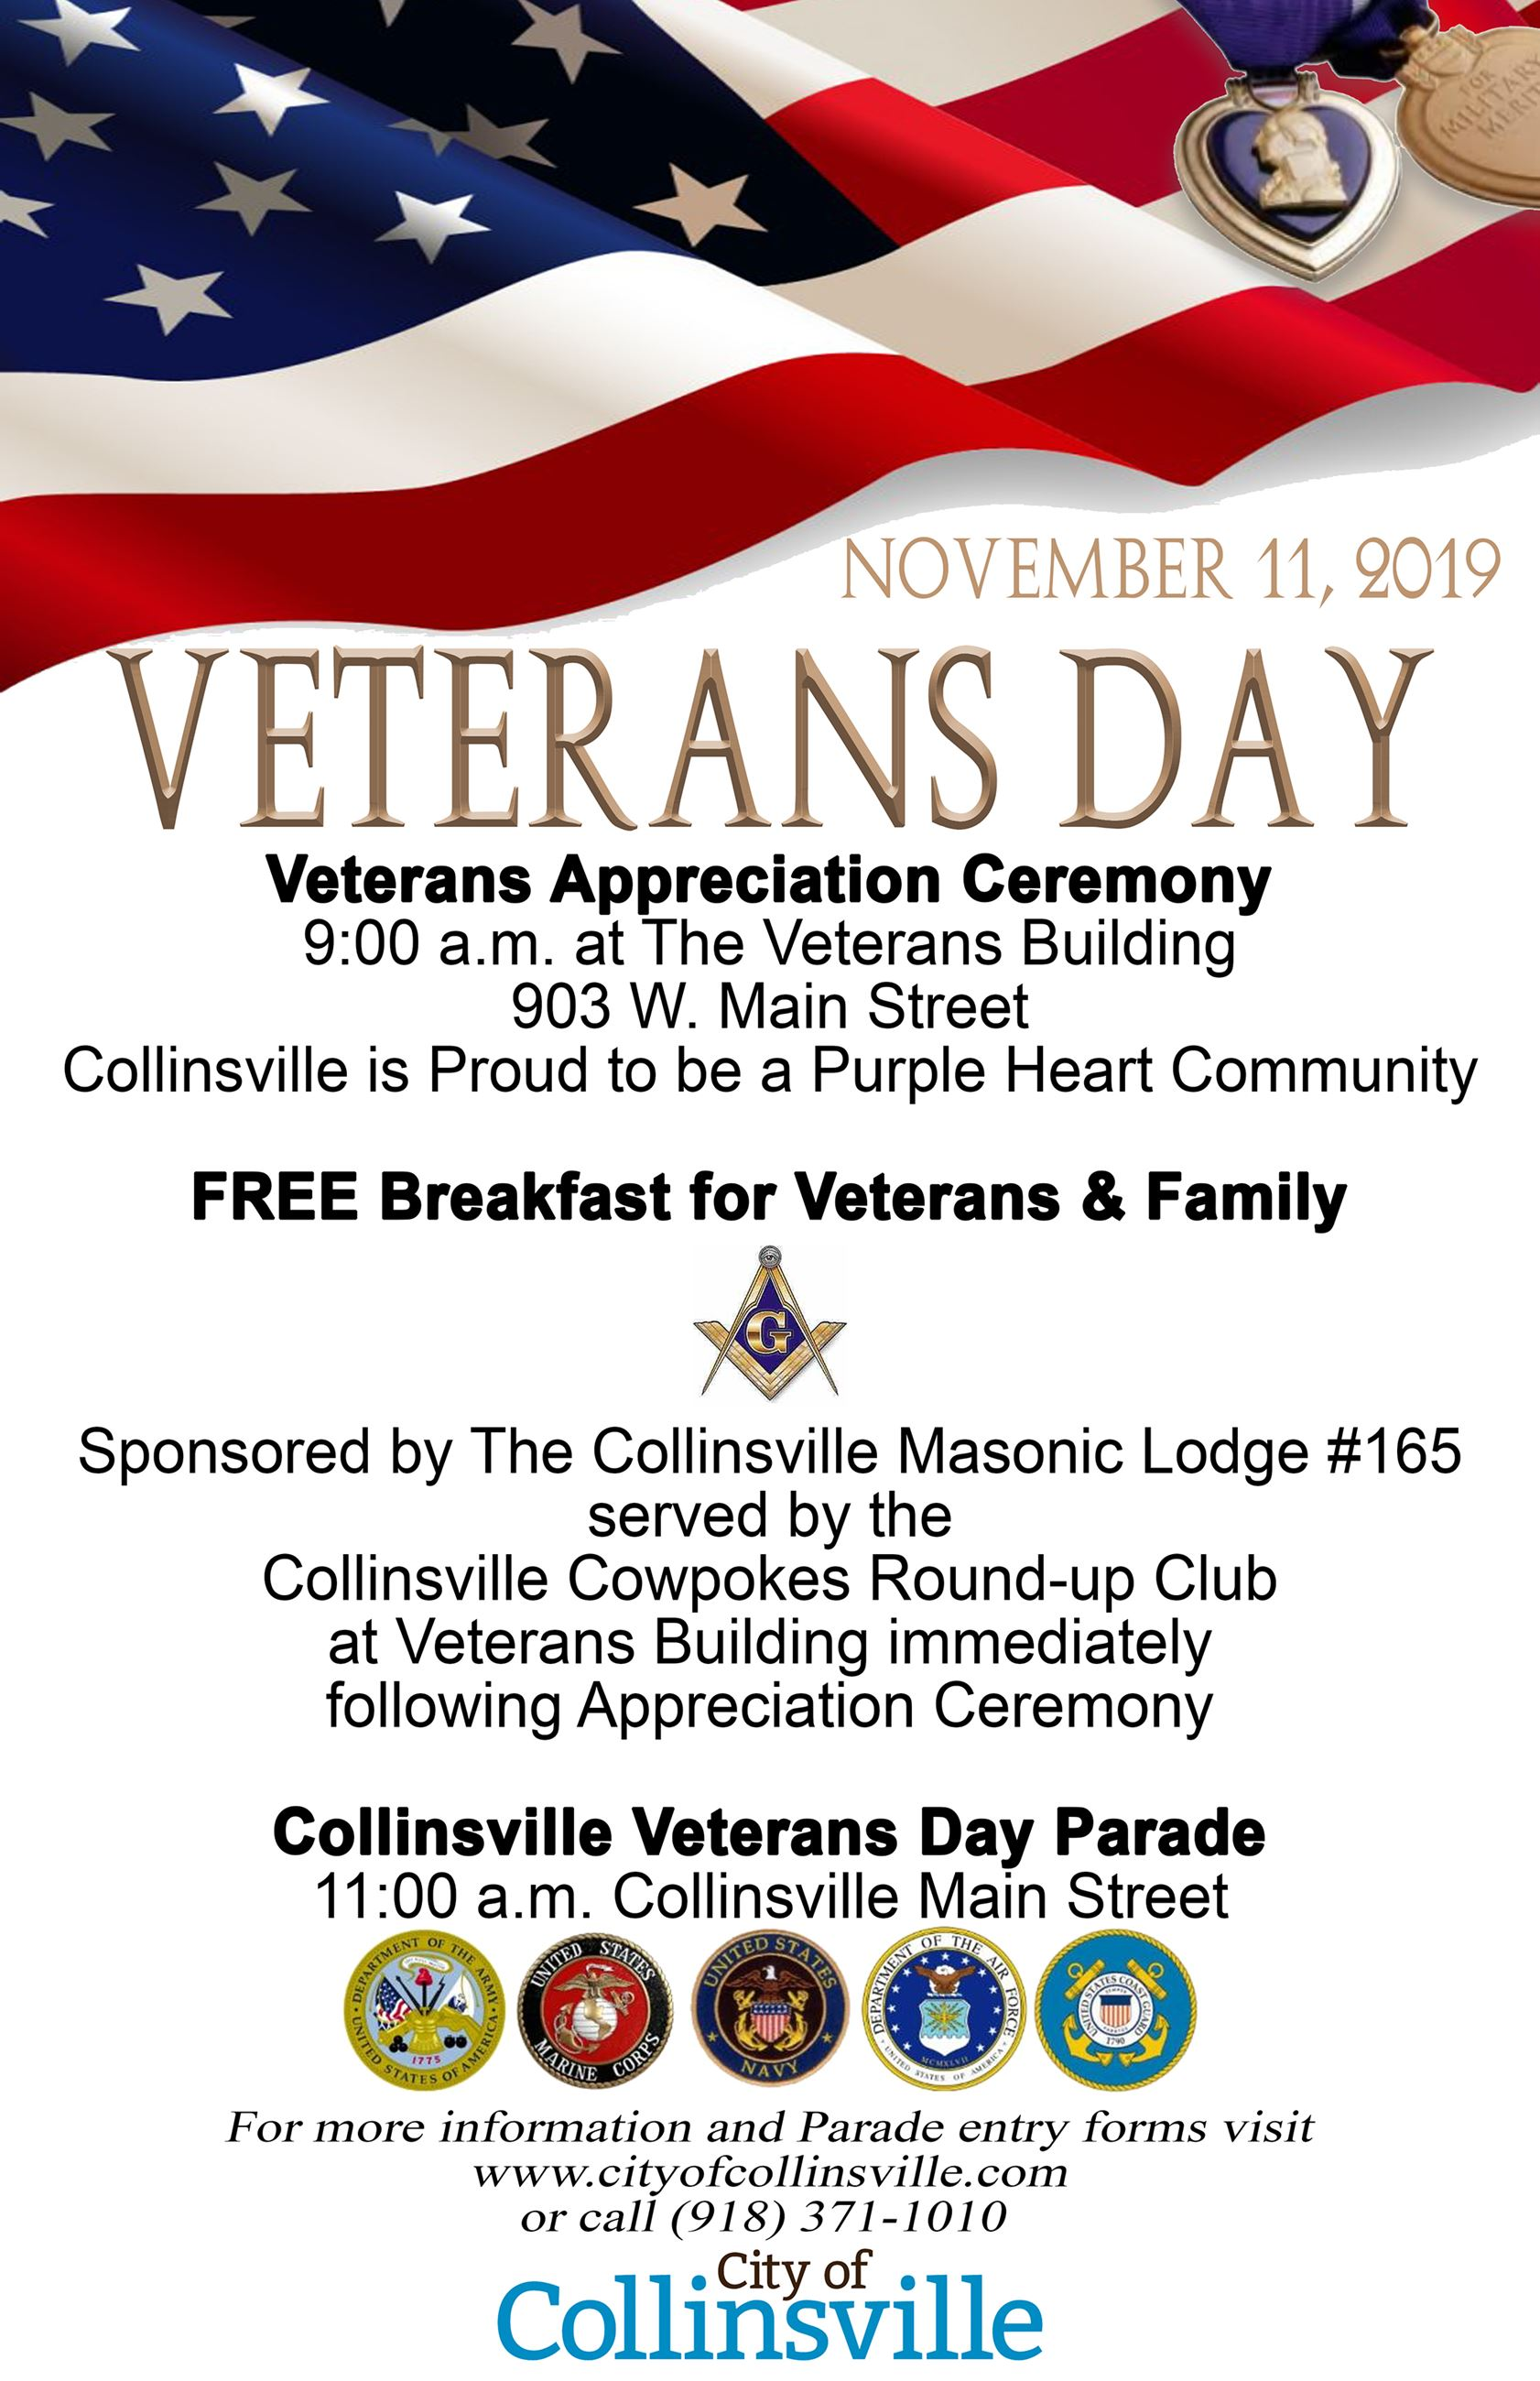 2019 Veterans Day Poster